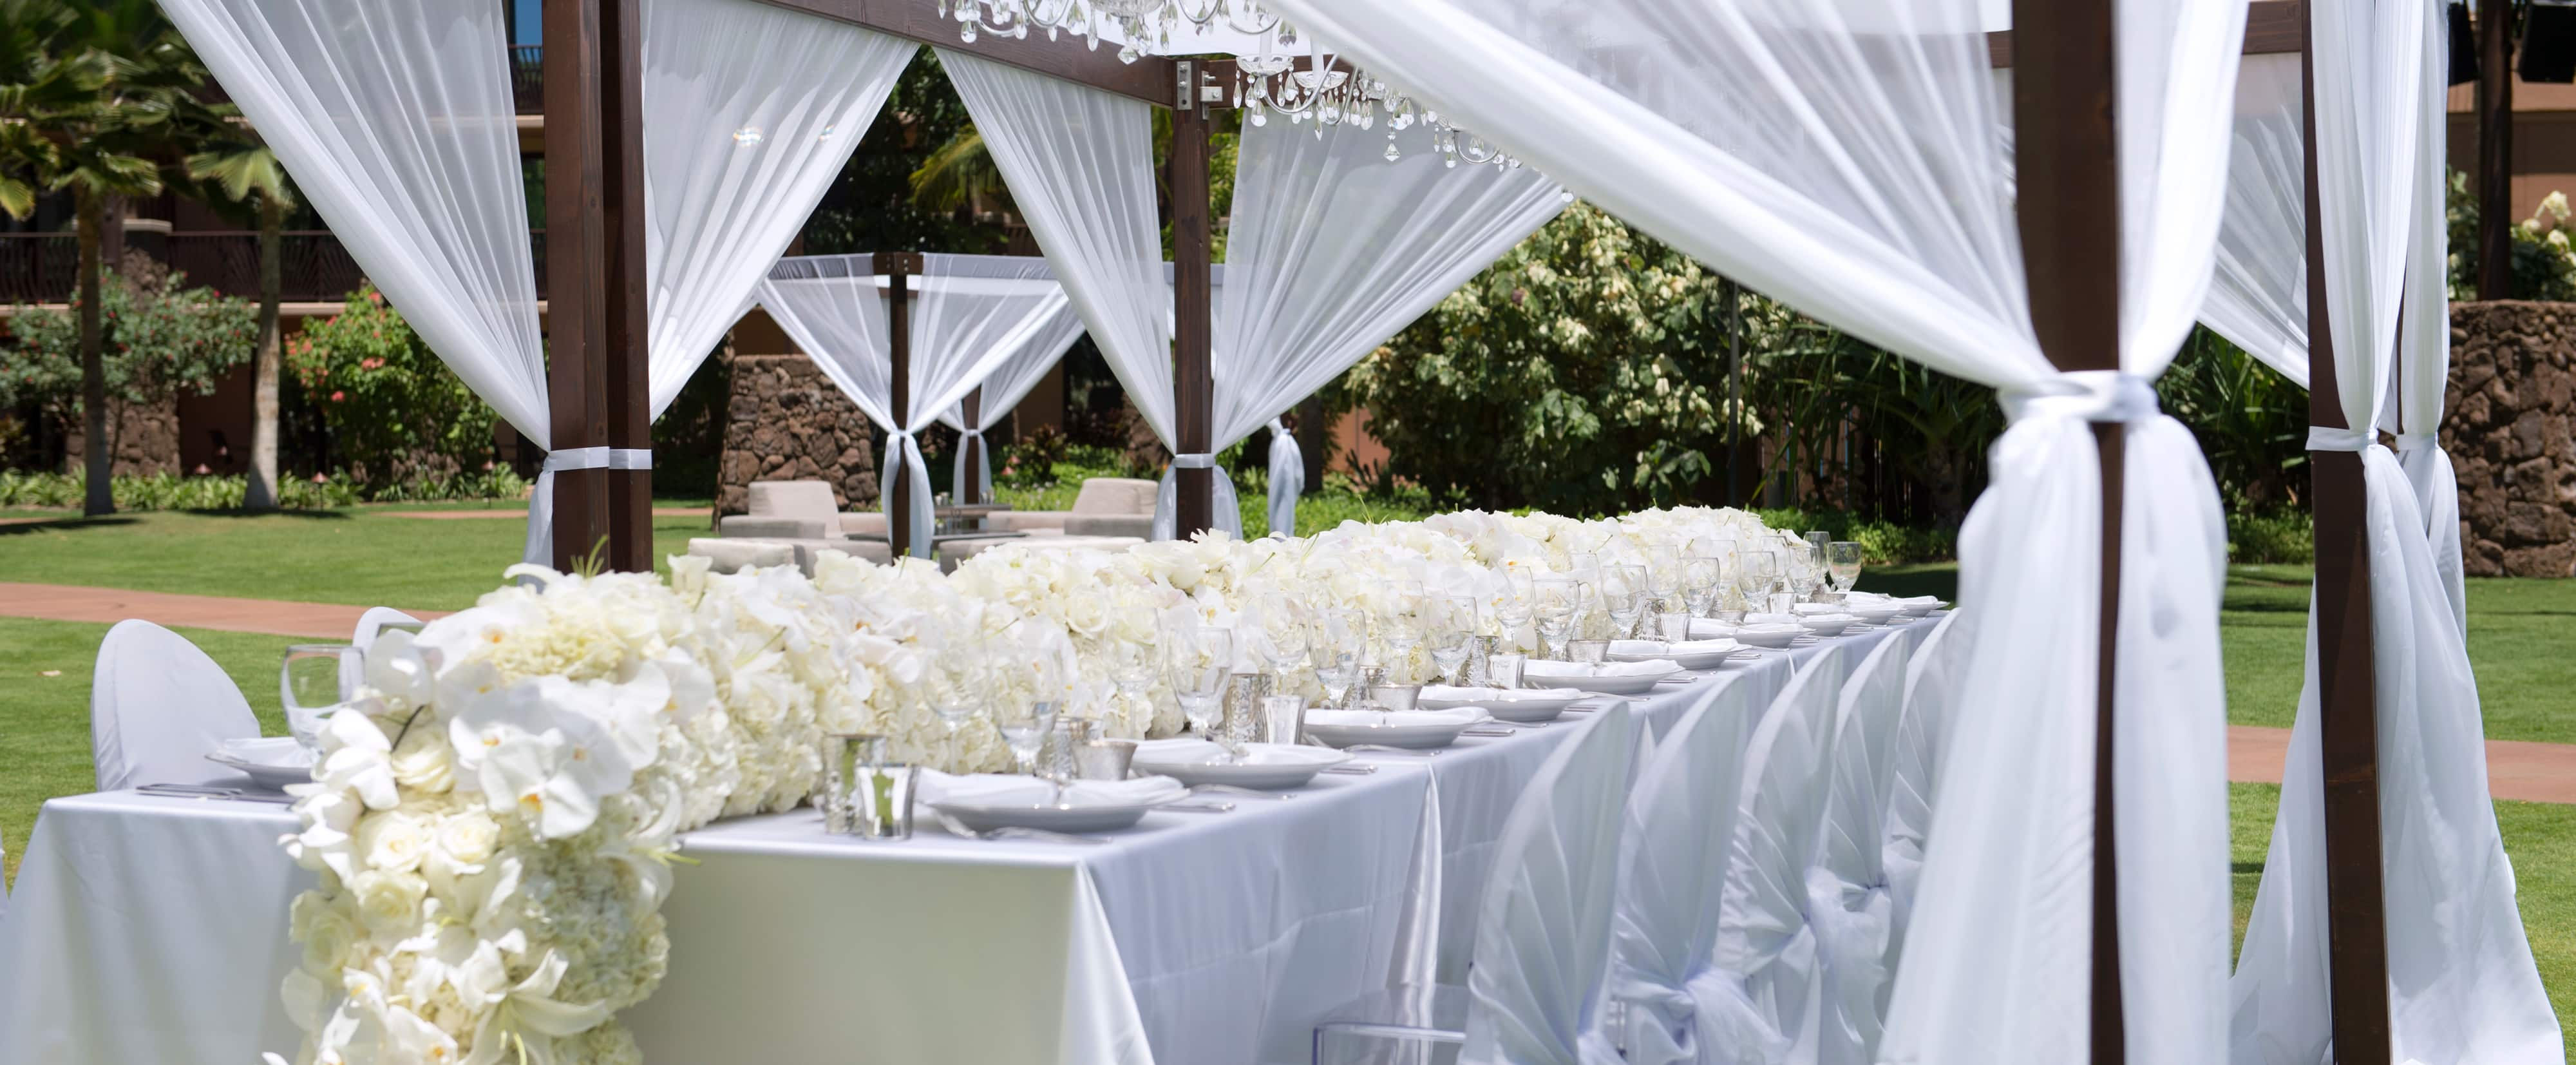 A wedding party banquet table decorated with a garland of white roses and orchids under a canopy on a lawn